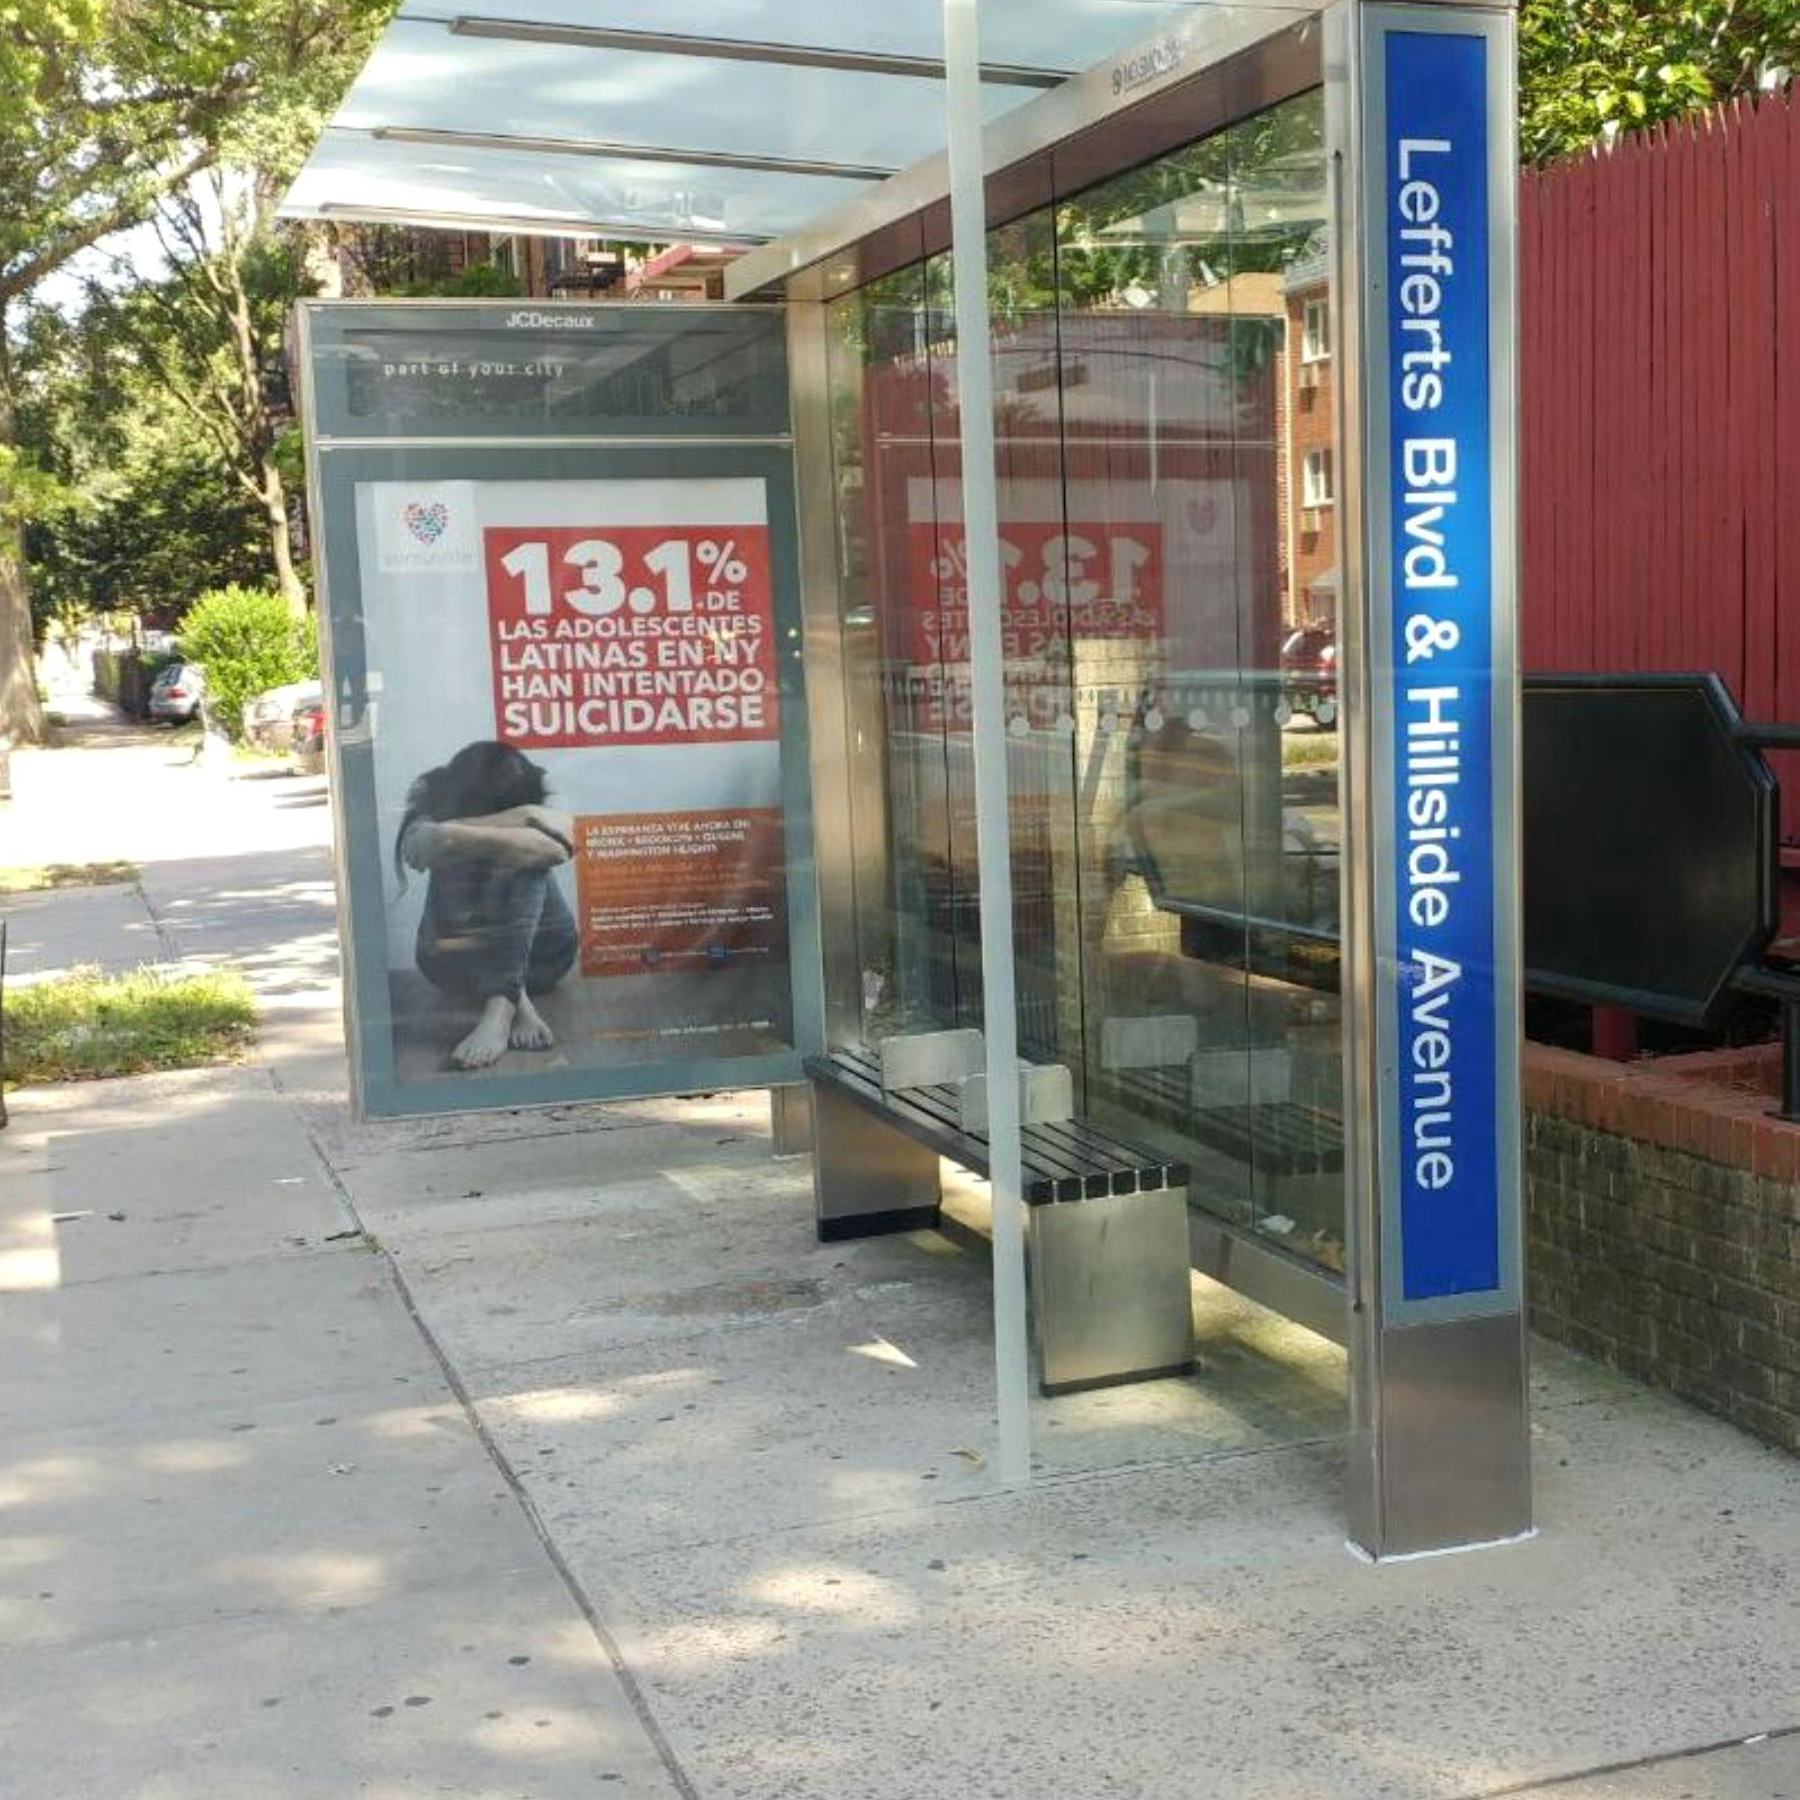 LIP Bus Shelter Campaign Lefferts Blvd a